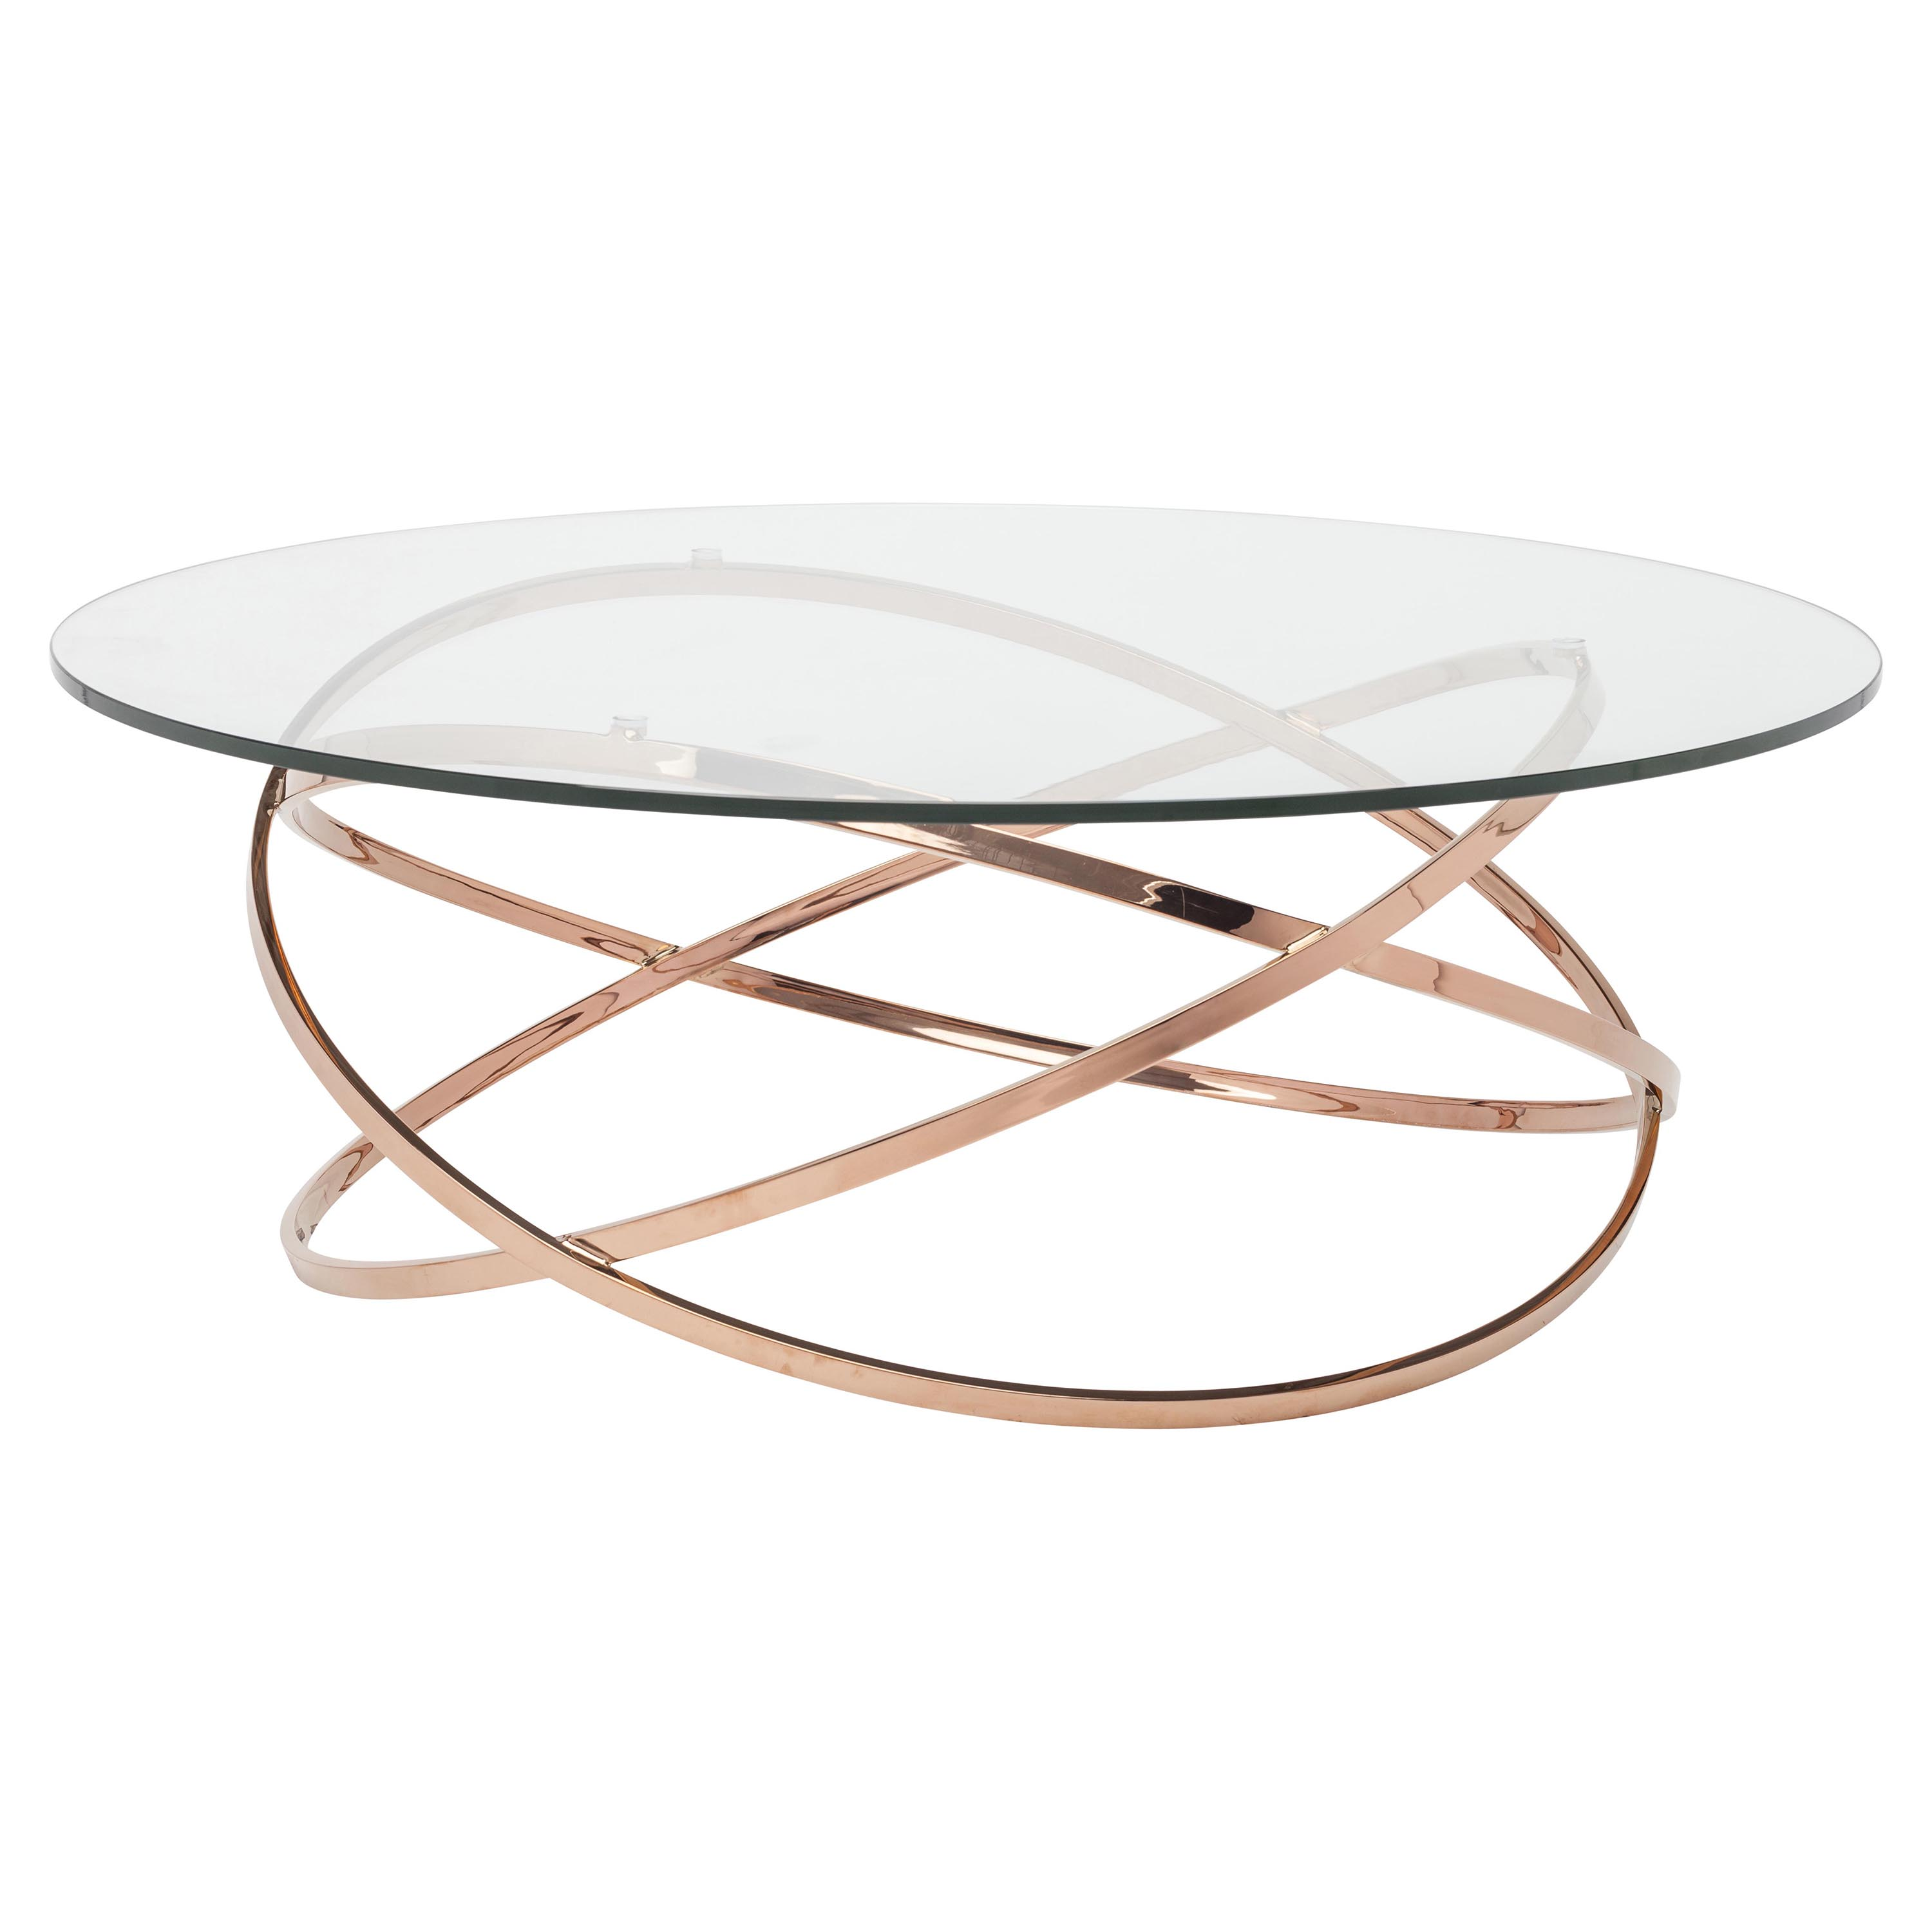 product 16471 Top Result 50 Best Of Gold and Glass Coffee Table Image 2017 Ksh4